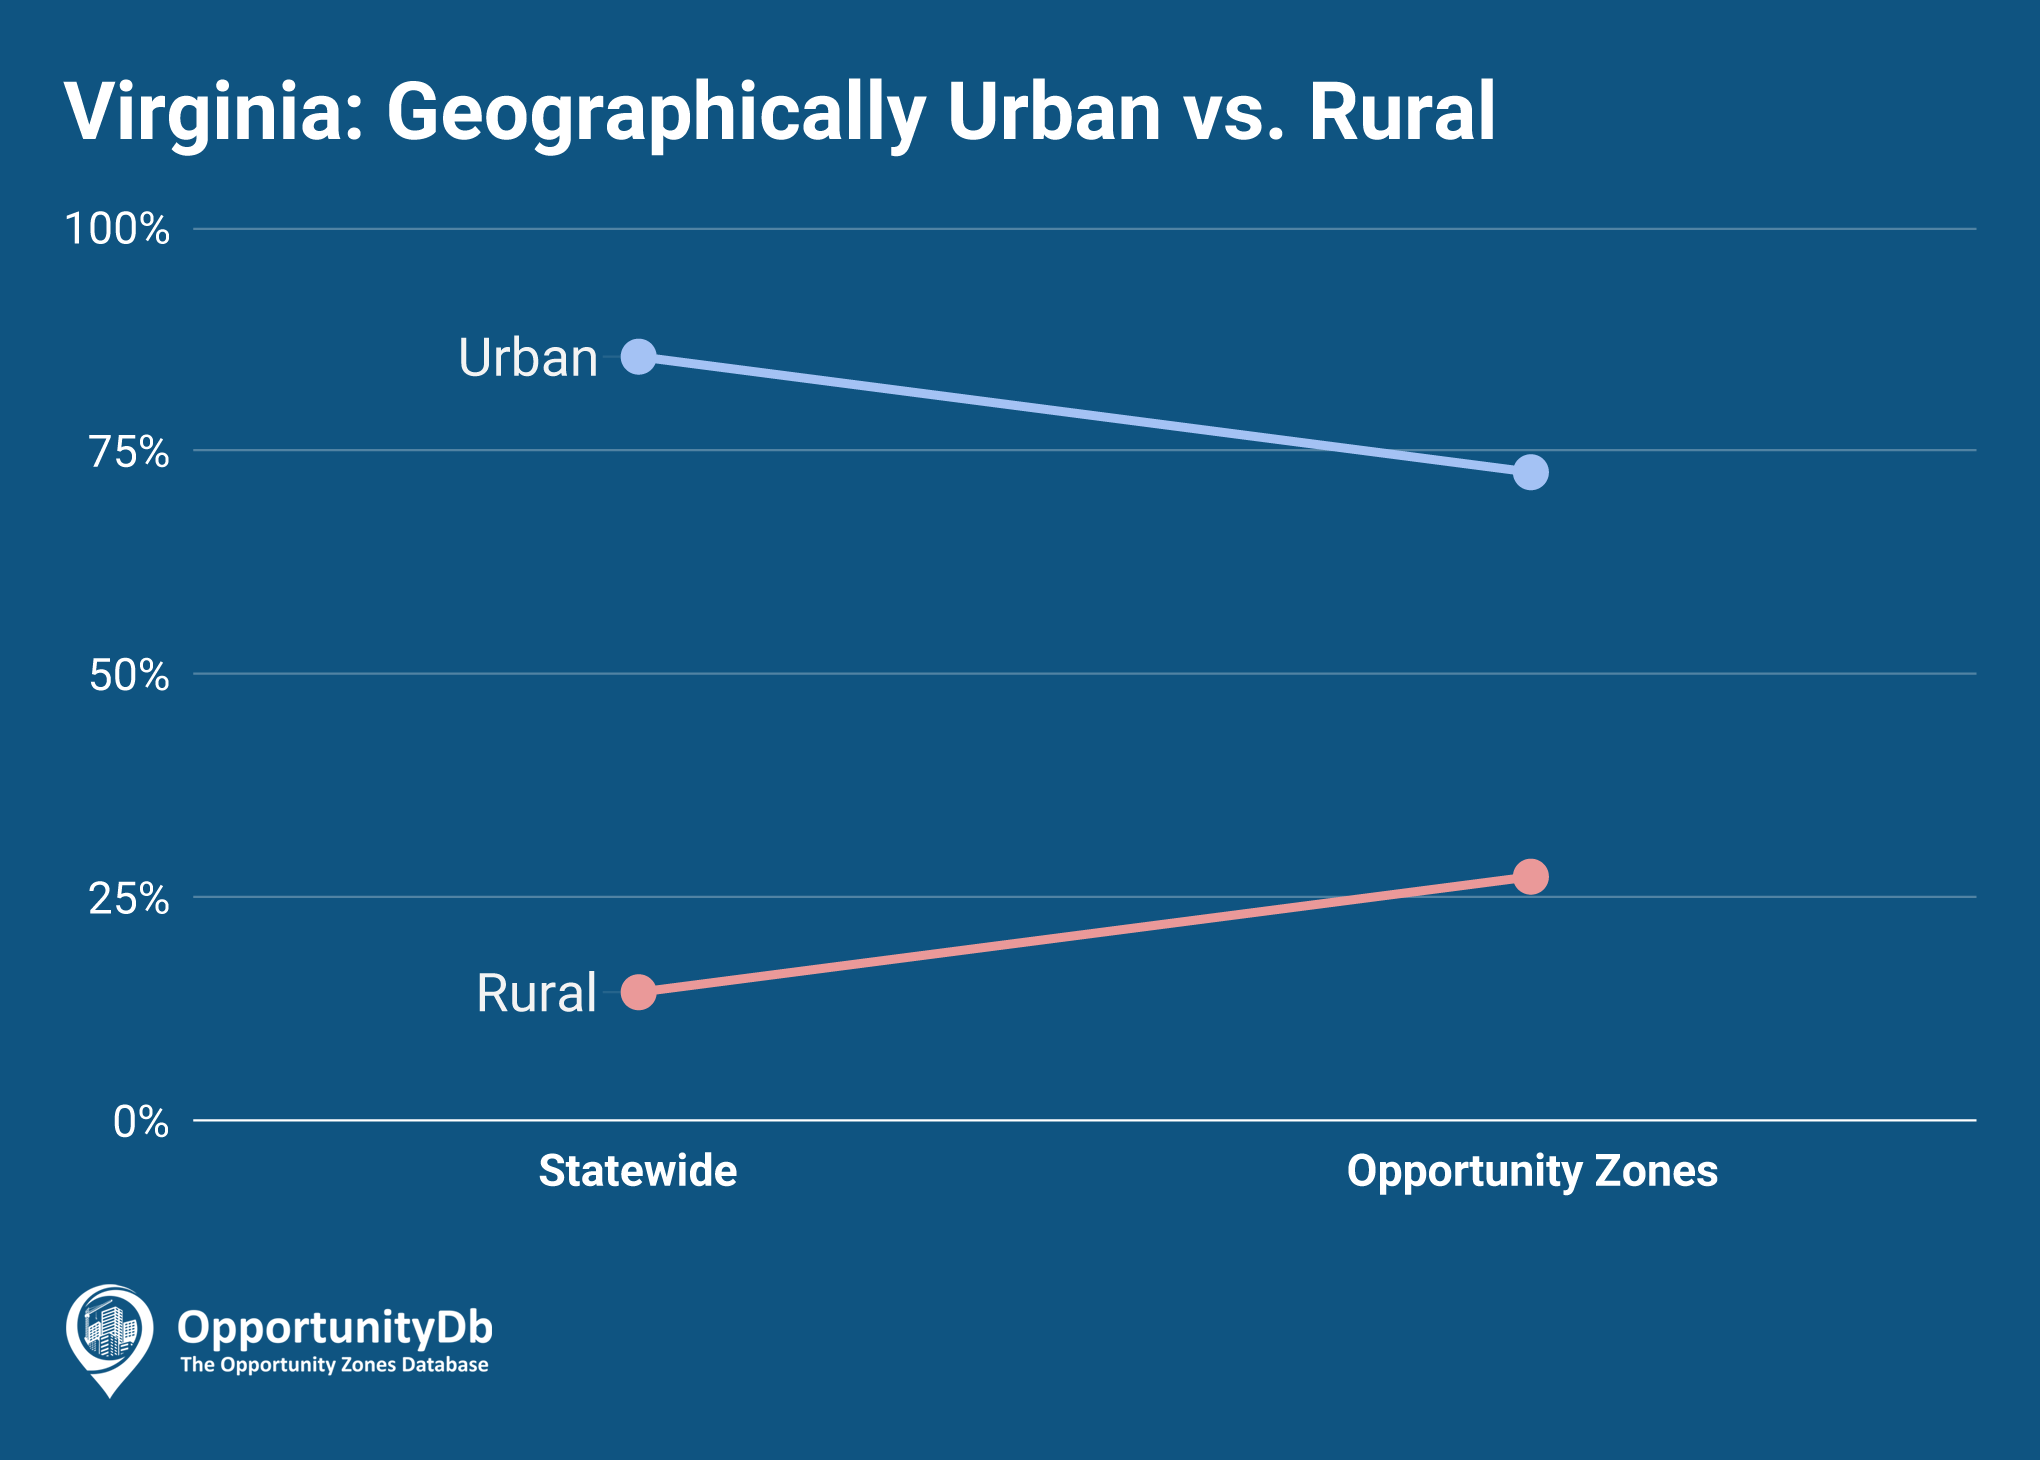 Urban vs. Rural in Virginia Opportunity Zones